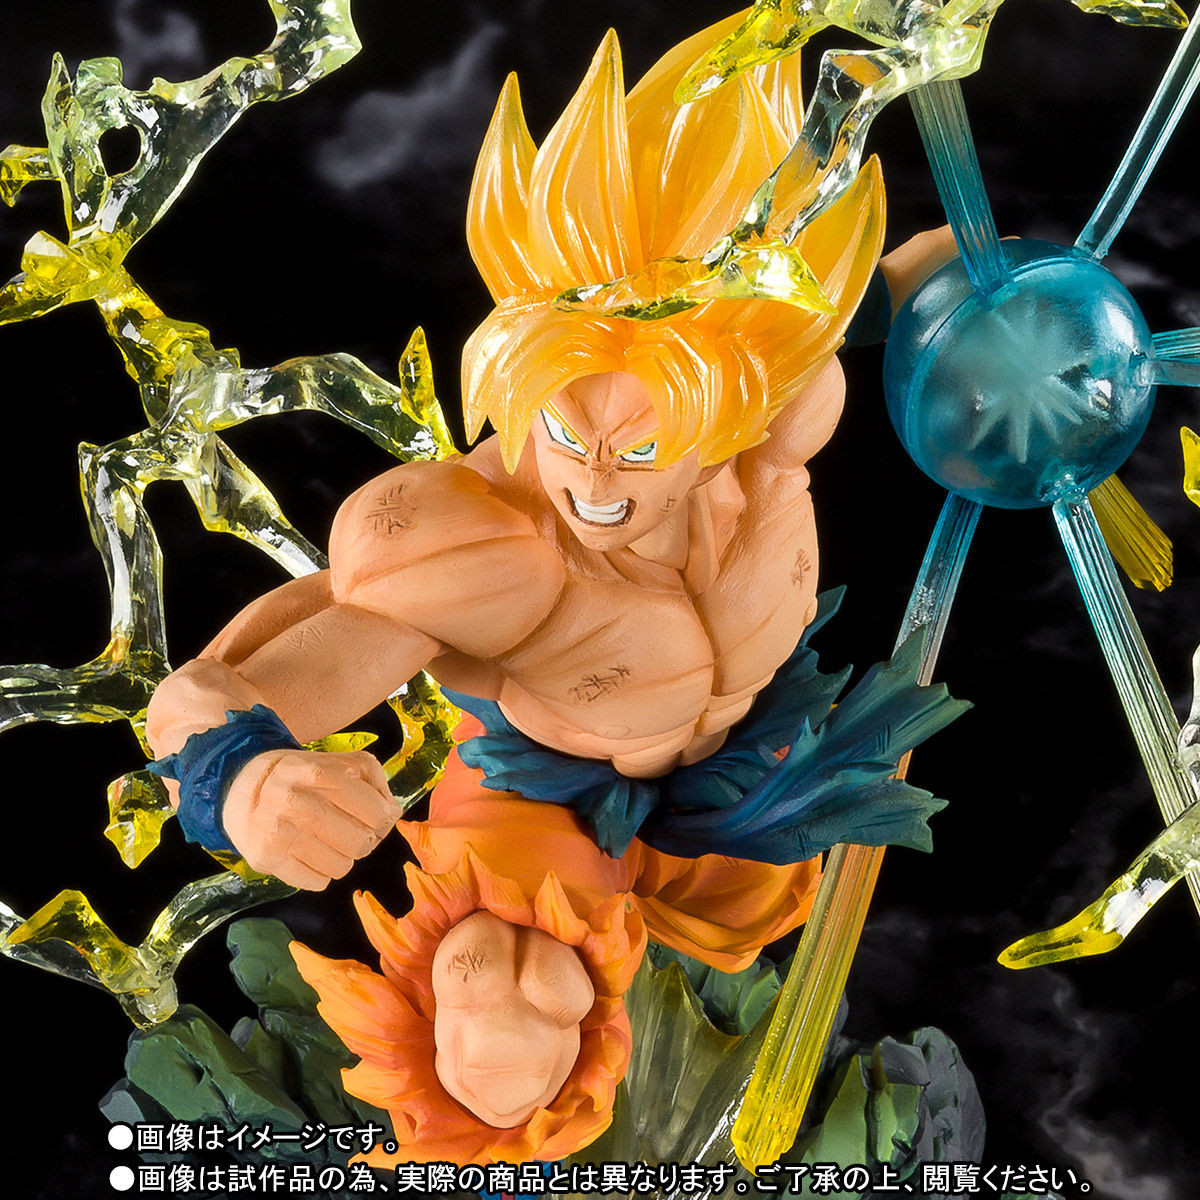 Link a goku figu zero – burning battle – 5